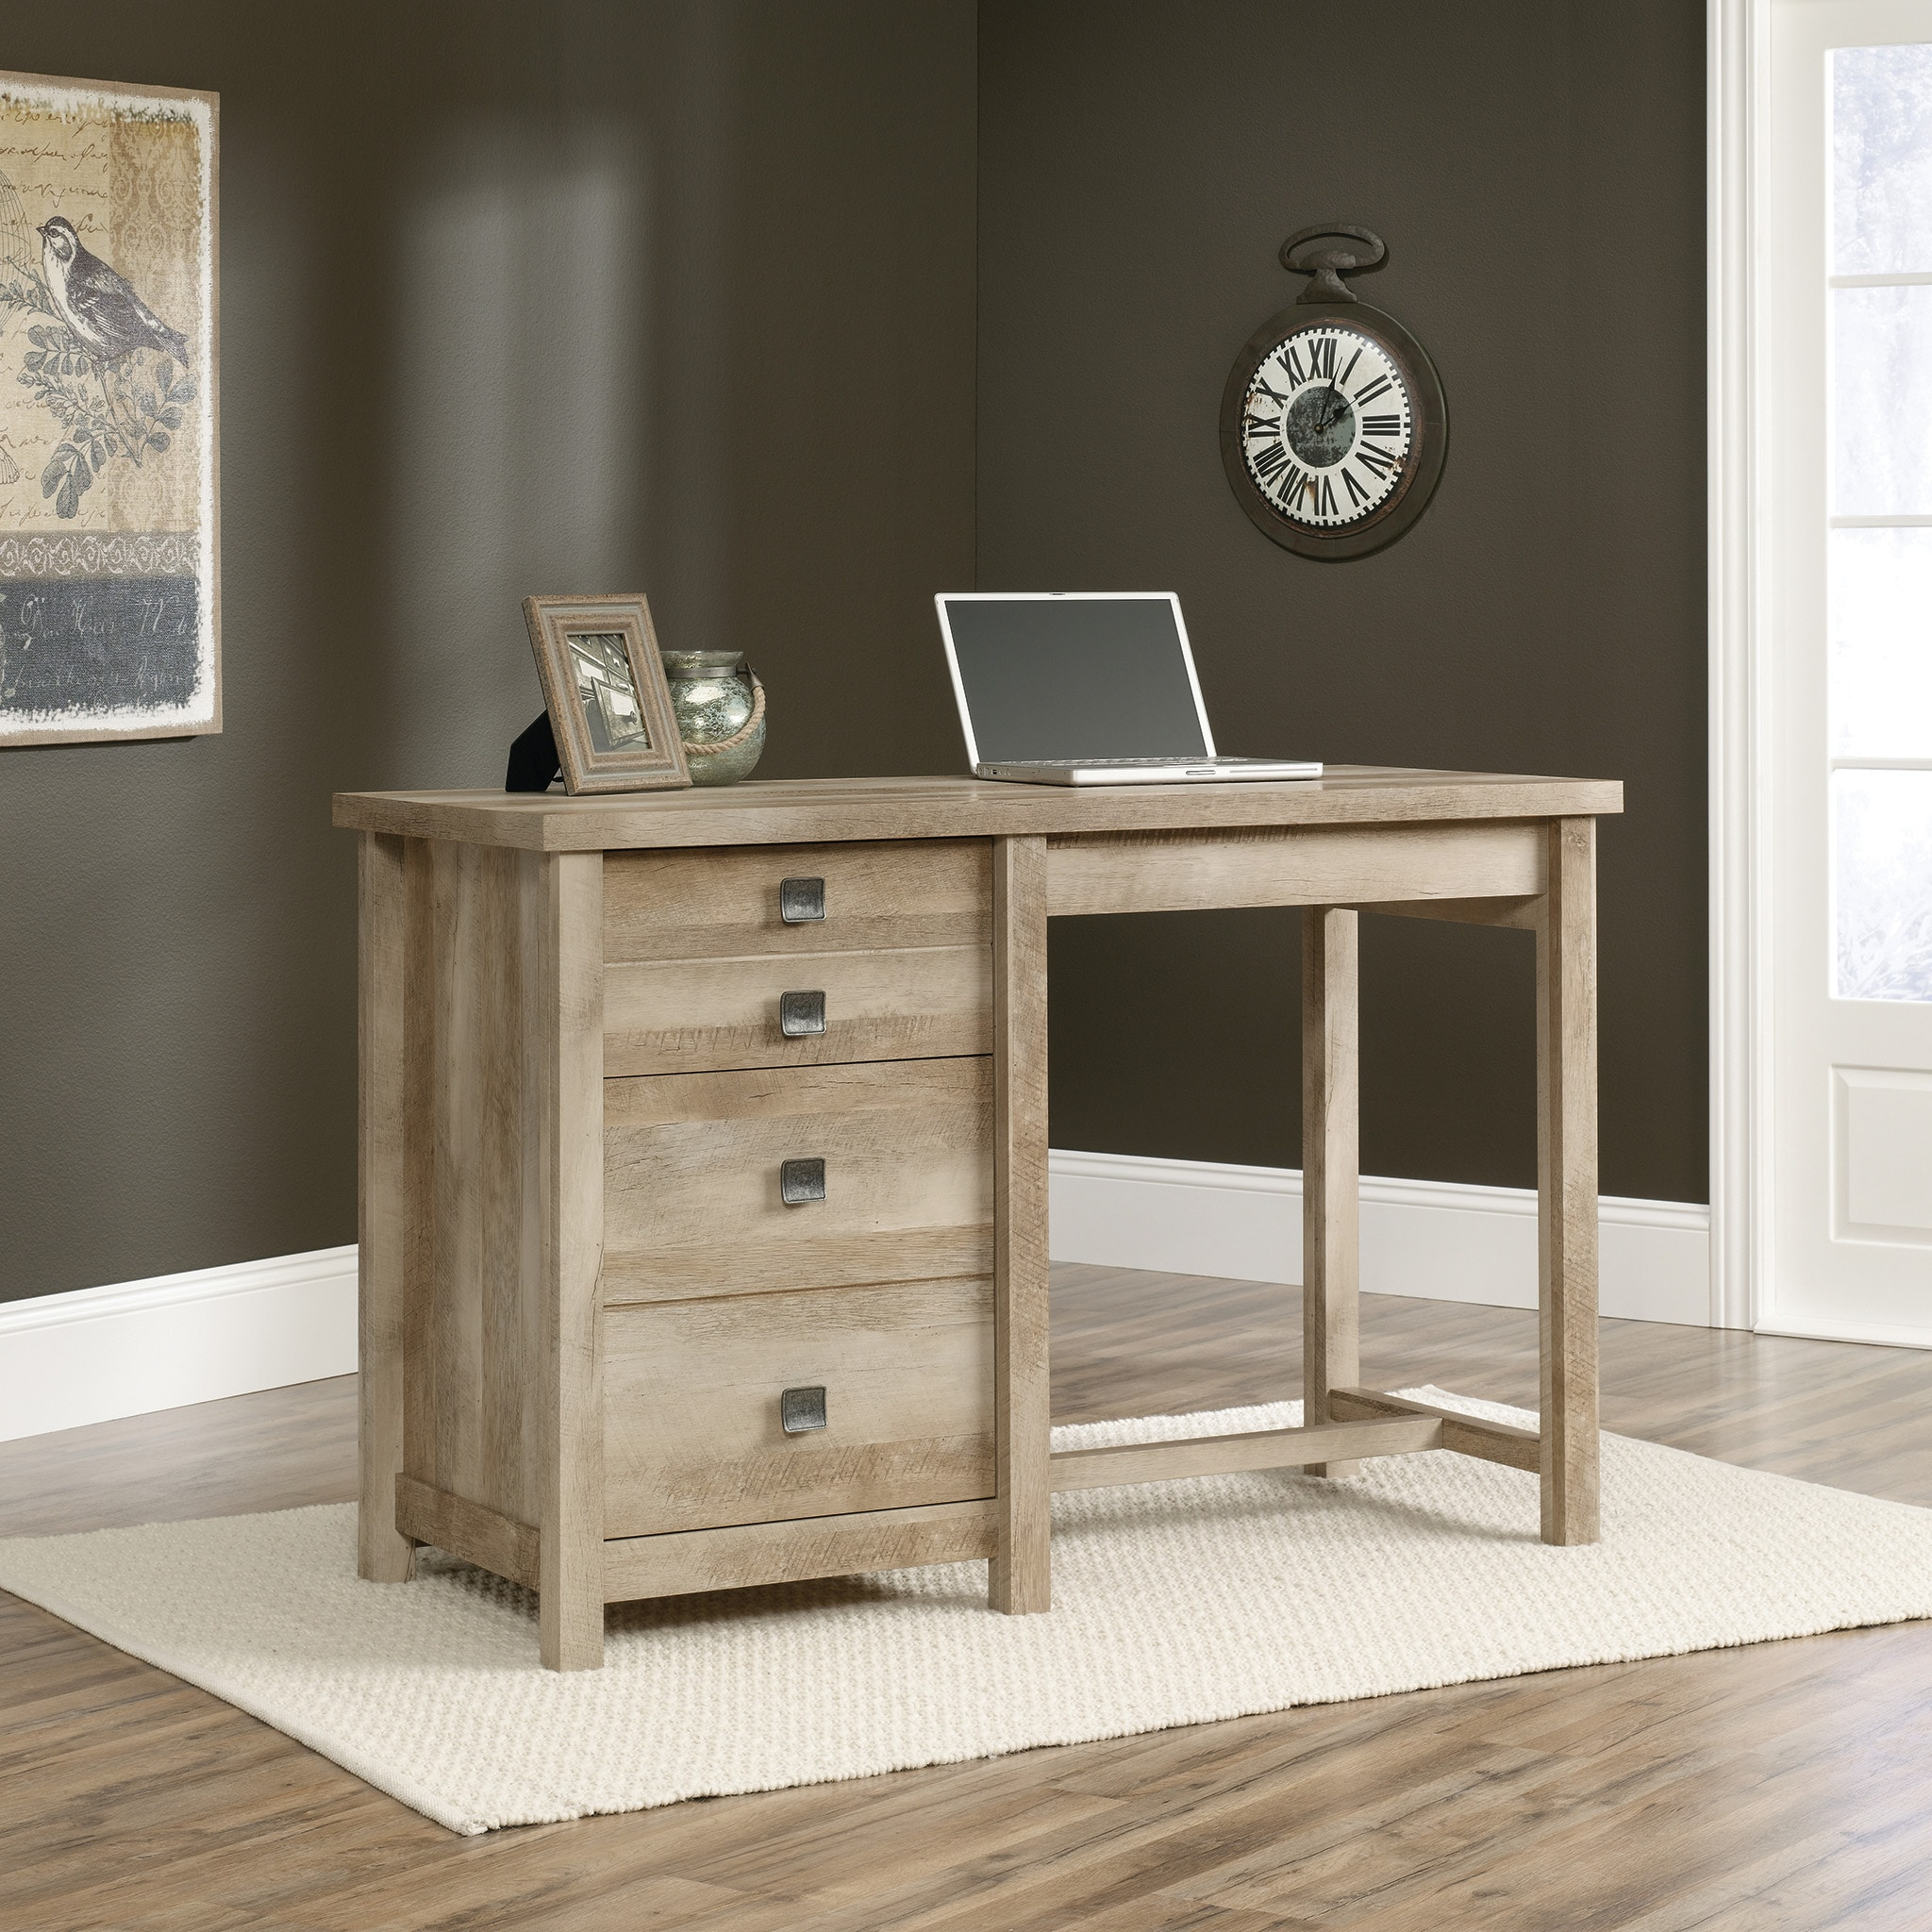 Cannery Bridge Work Table - Lintel Oak